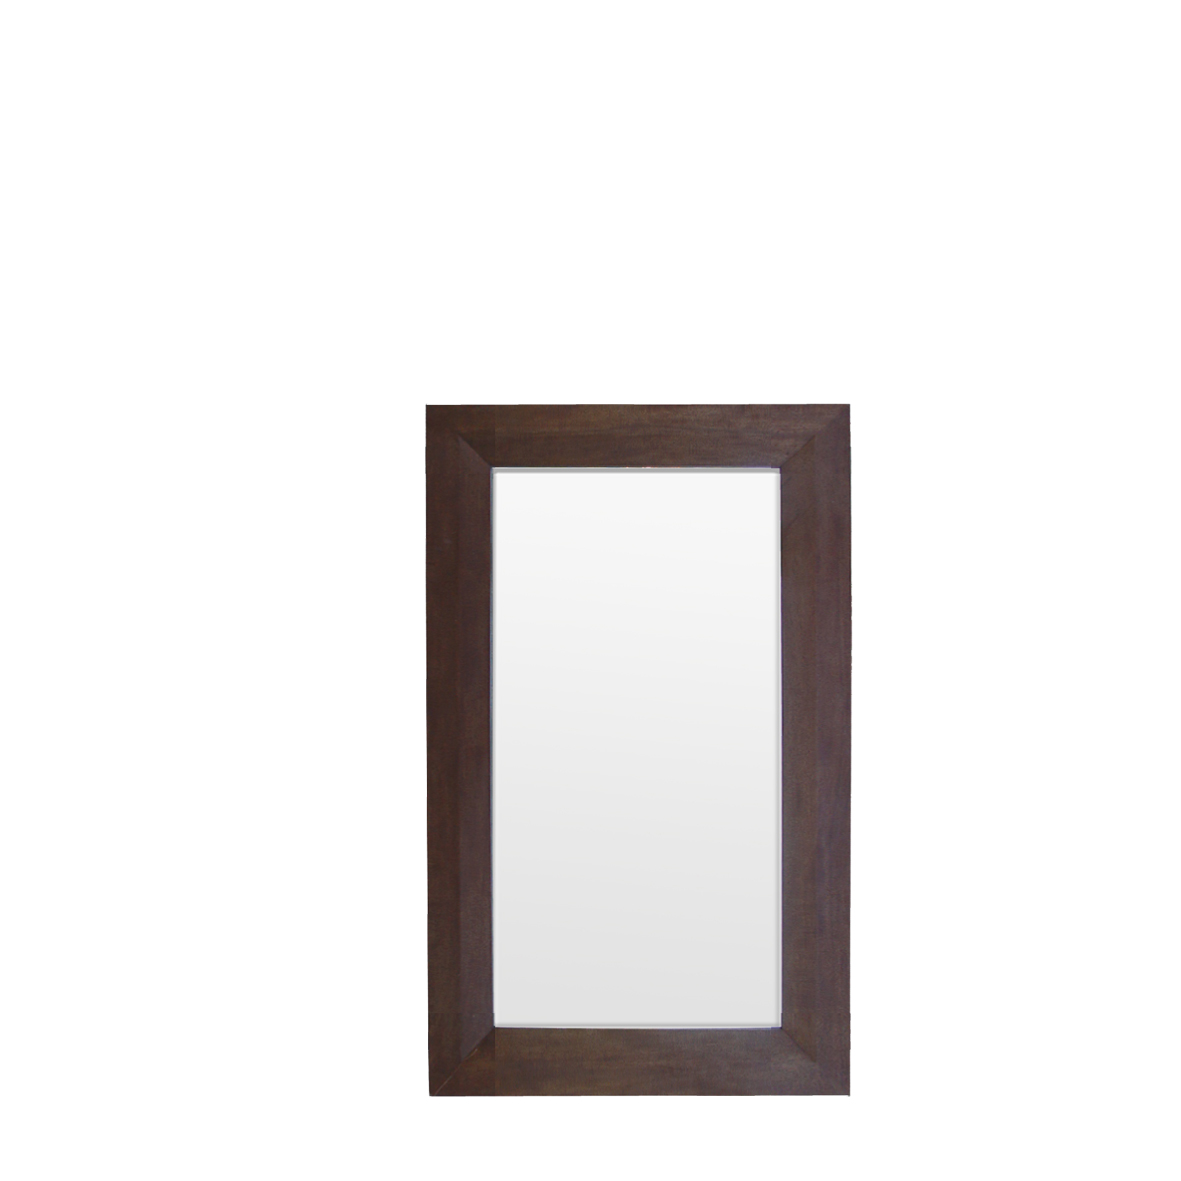 Buy Mirrors For Sale In Perth Large Mirrors Perth